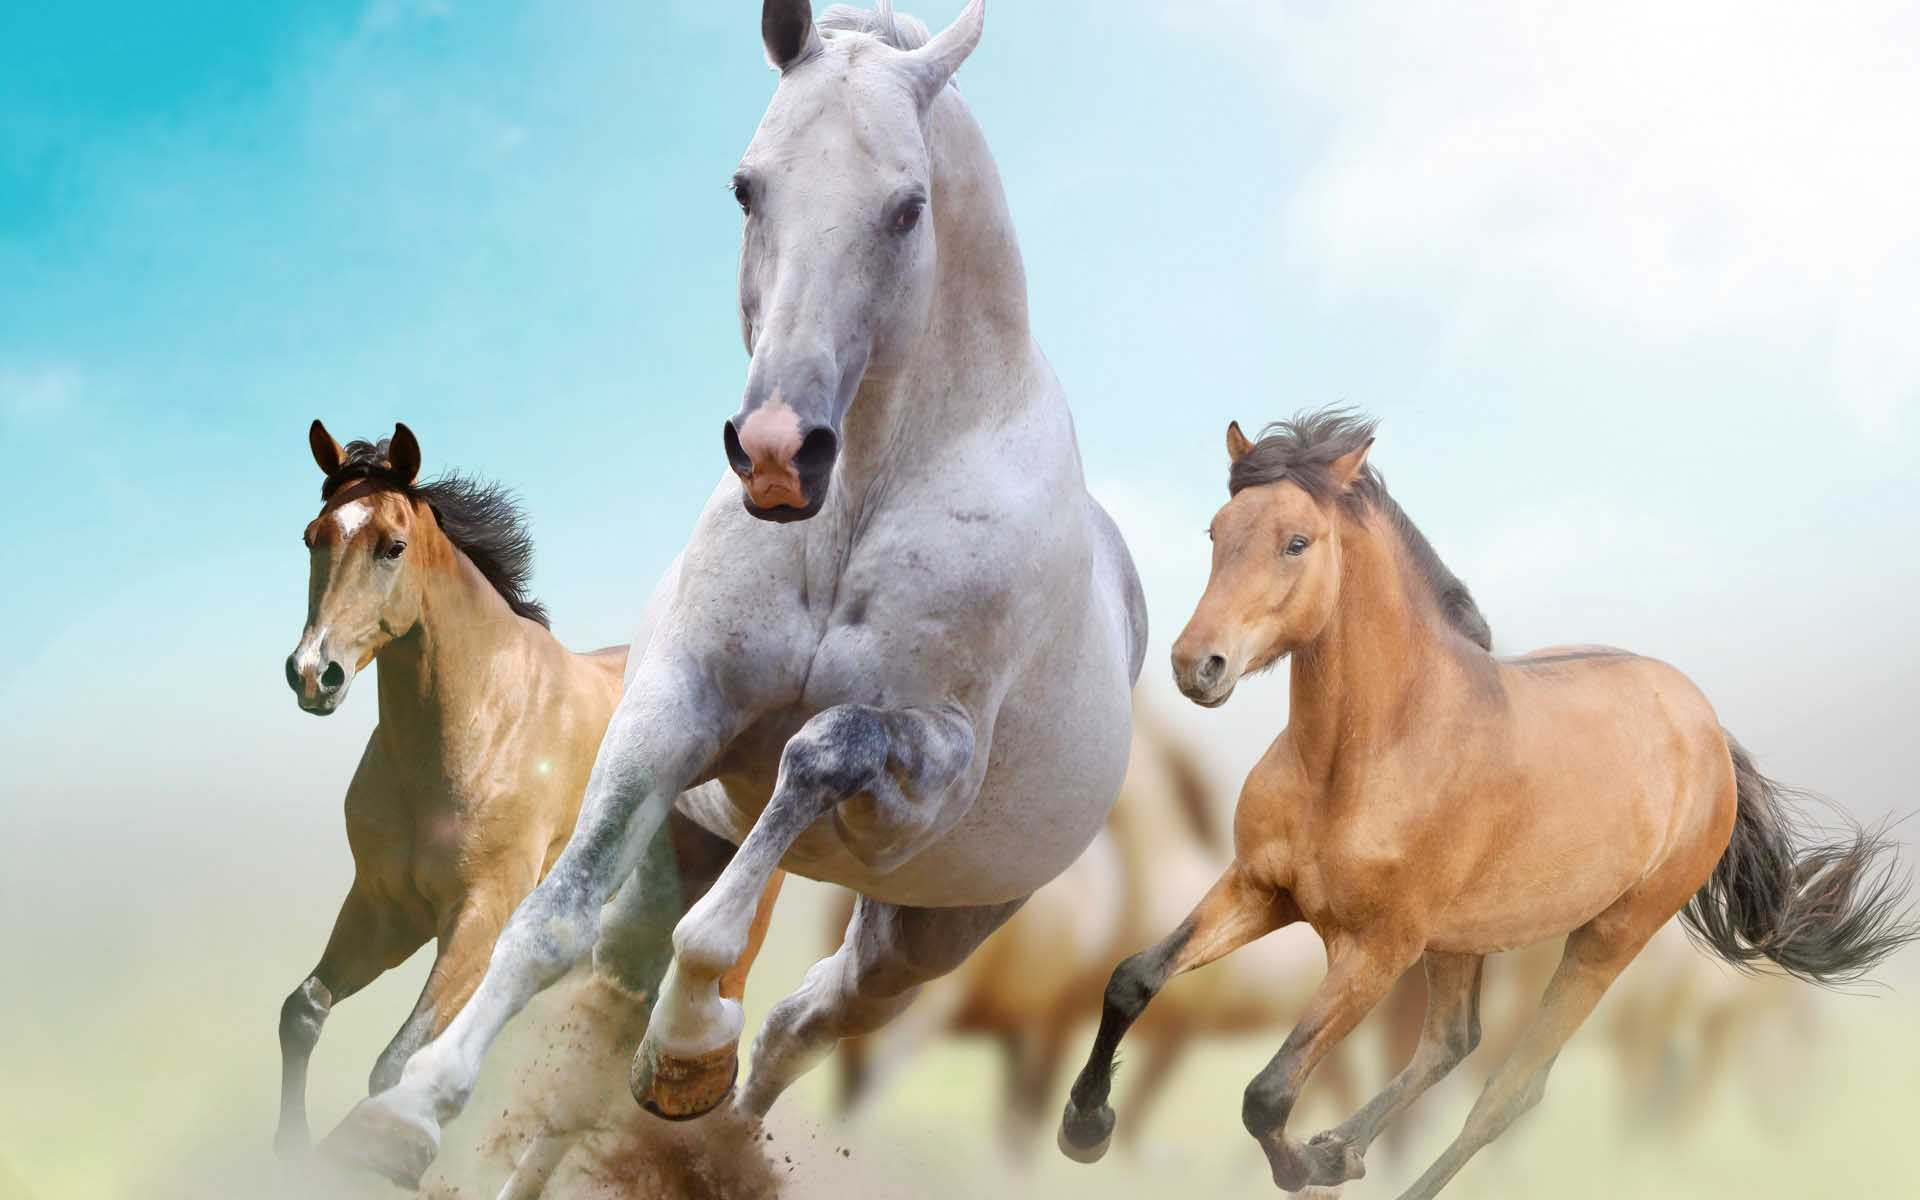 Beautiful Racing Horse Wallpapers In Hd Horse Wallpaper Painting Wallpaper Horses